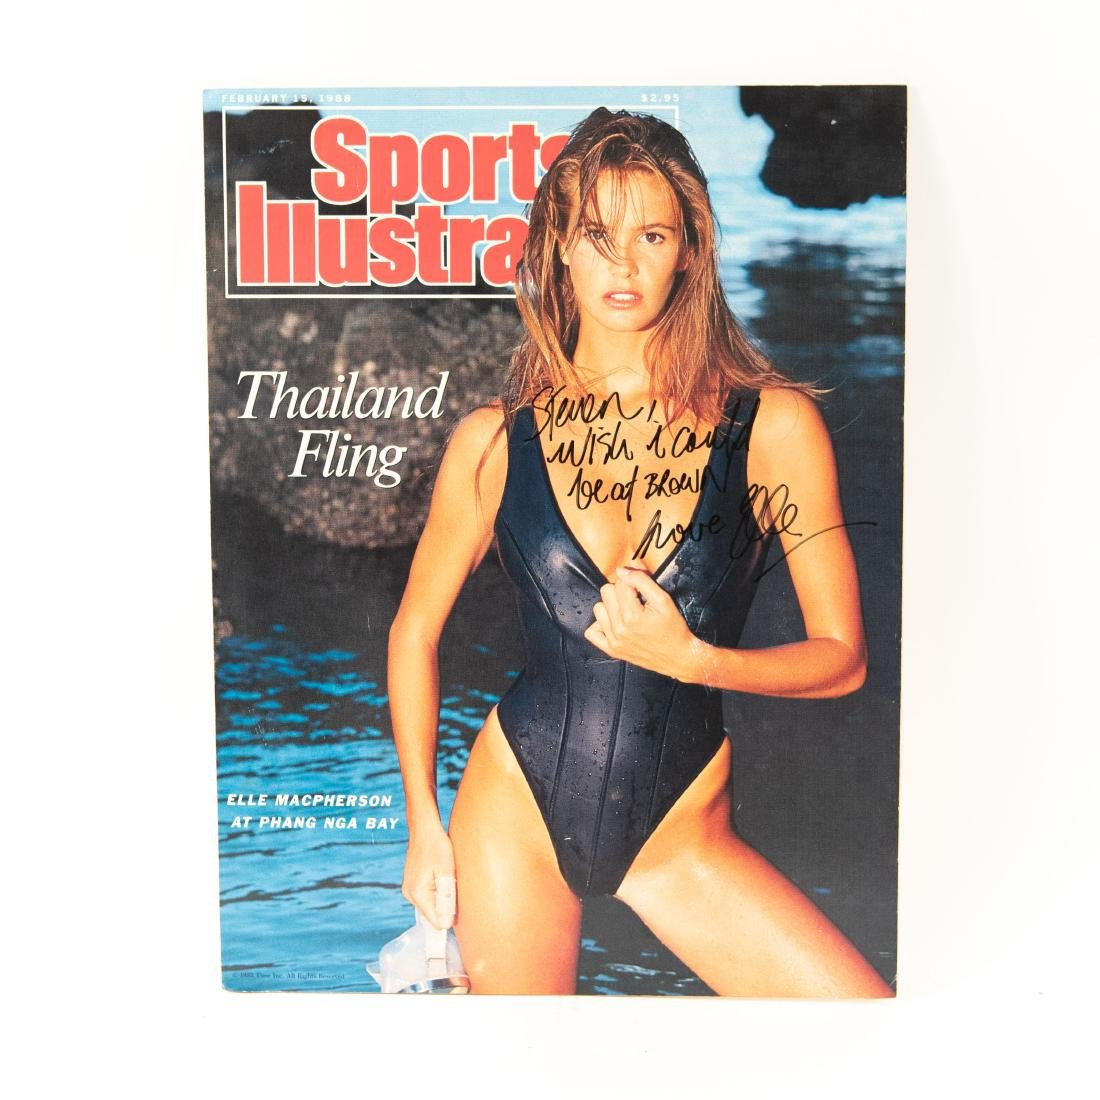 ELLE MACPHERSON SIGNED POSTER